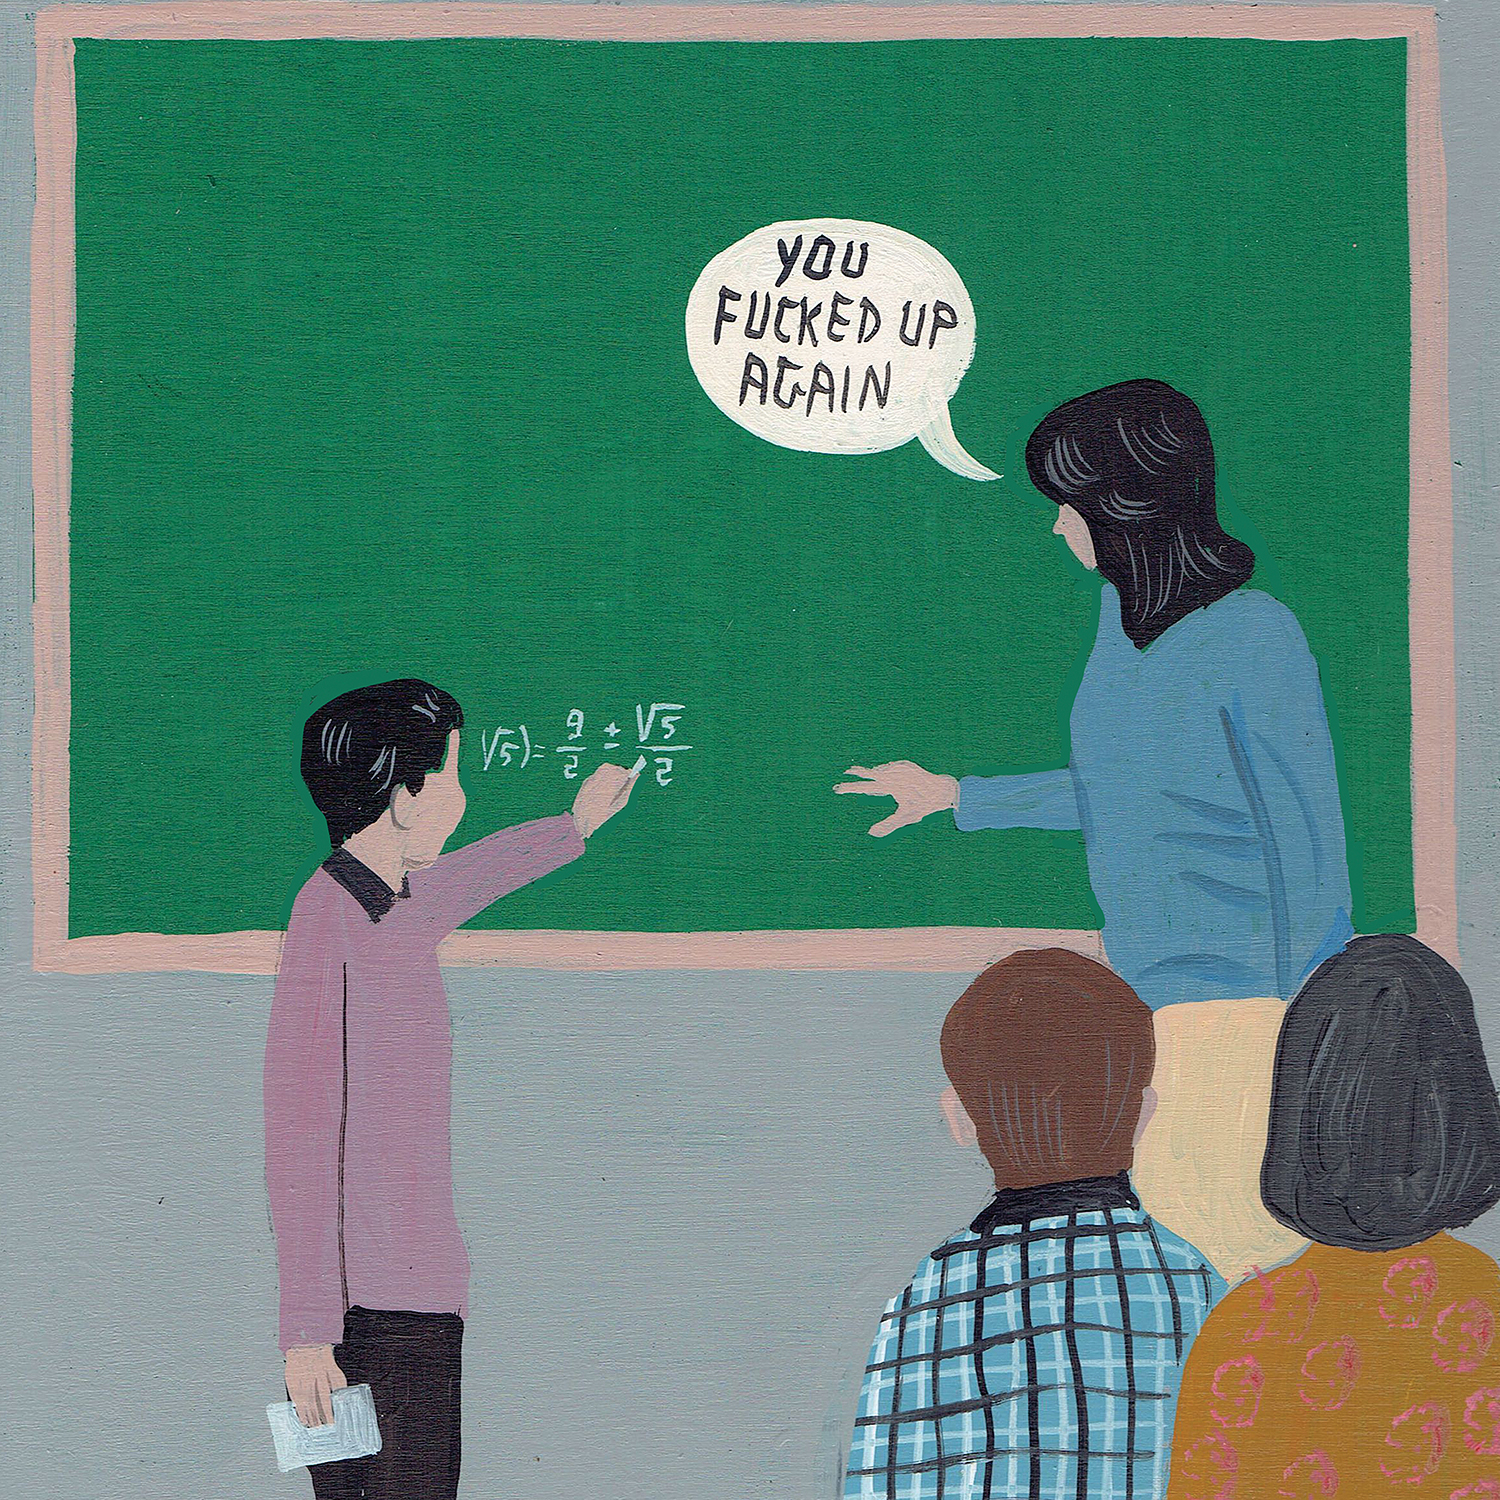 Image of student writing on a chalkboard and teacher correcting his work with a speech bubble